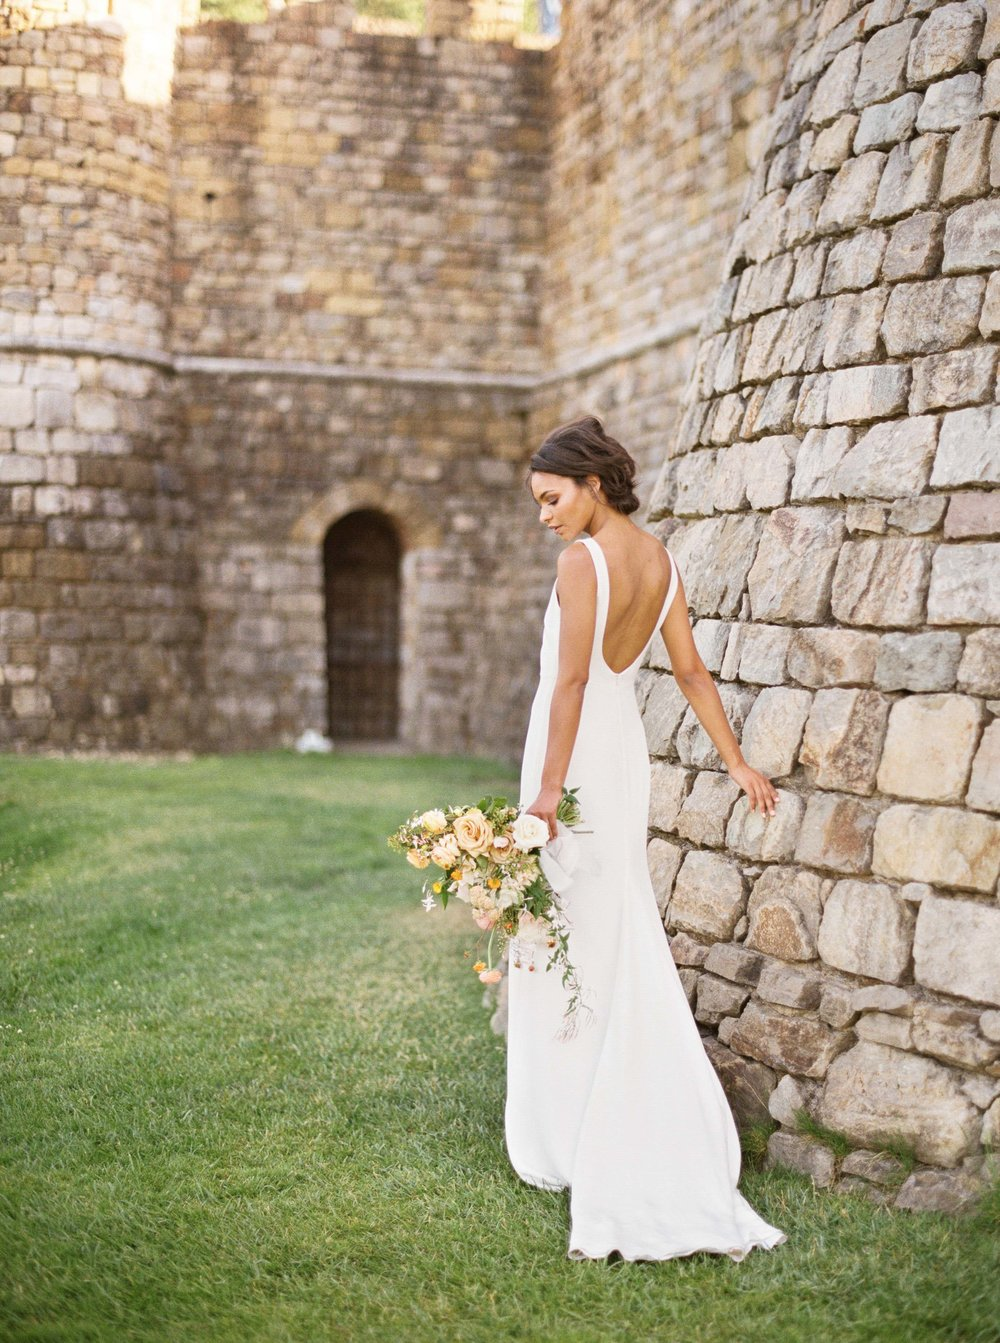 055napa_wedding_photographer_and_videographer_destination_and_elopement_photography.jpg